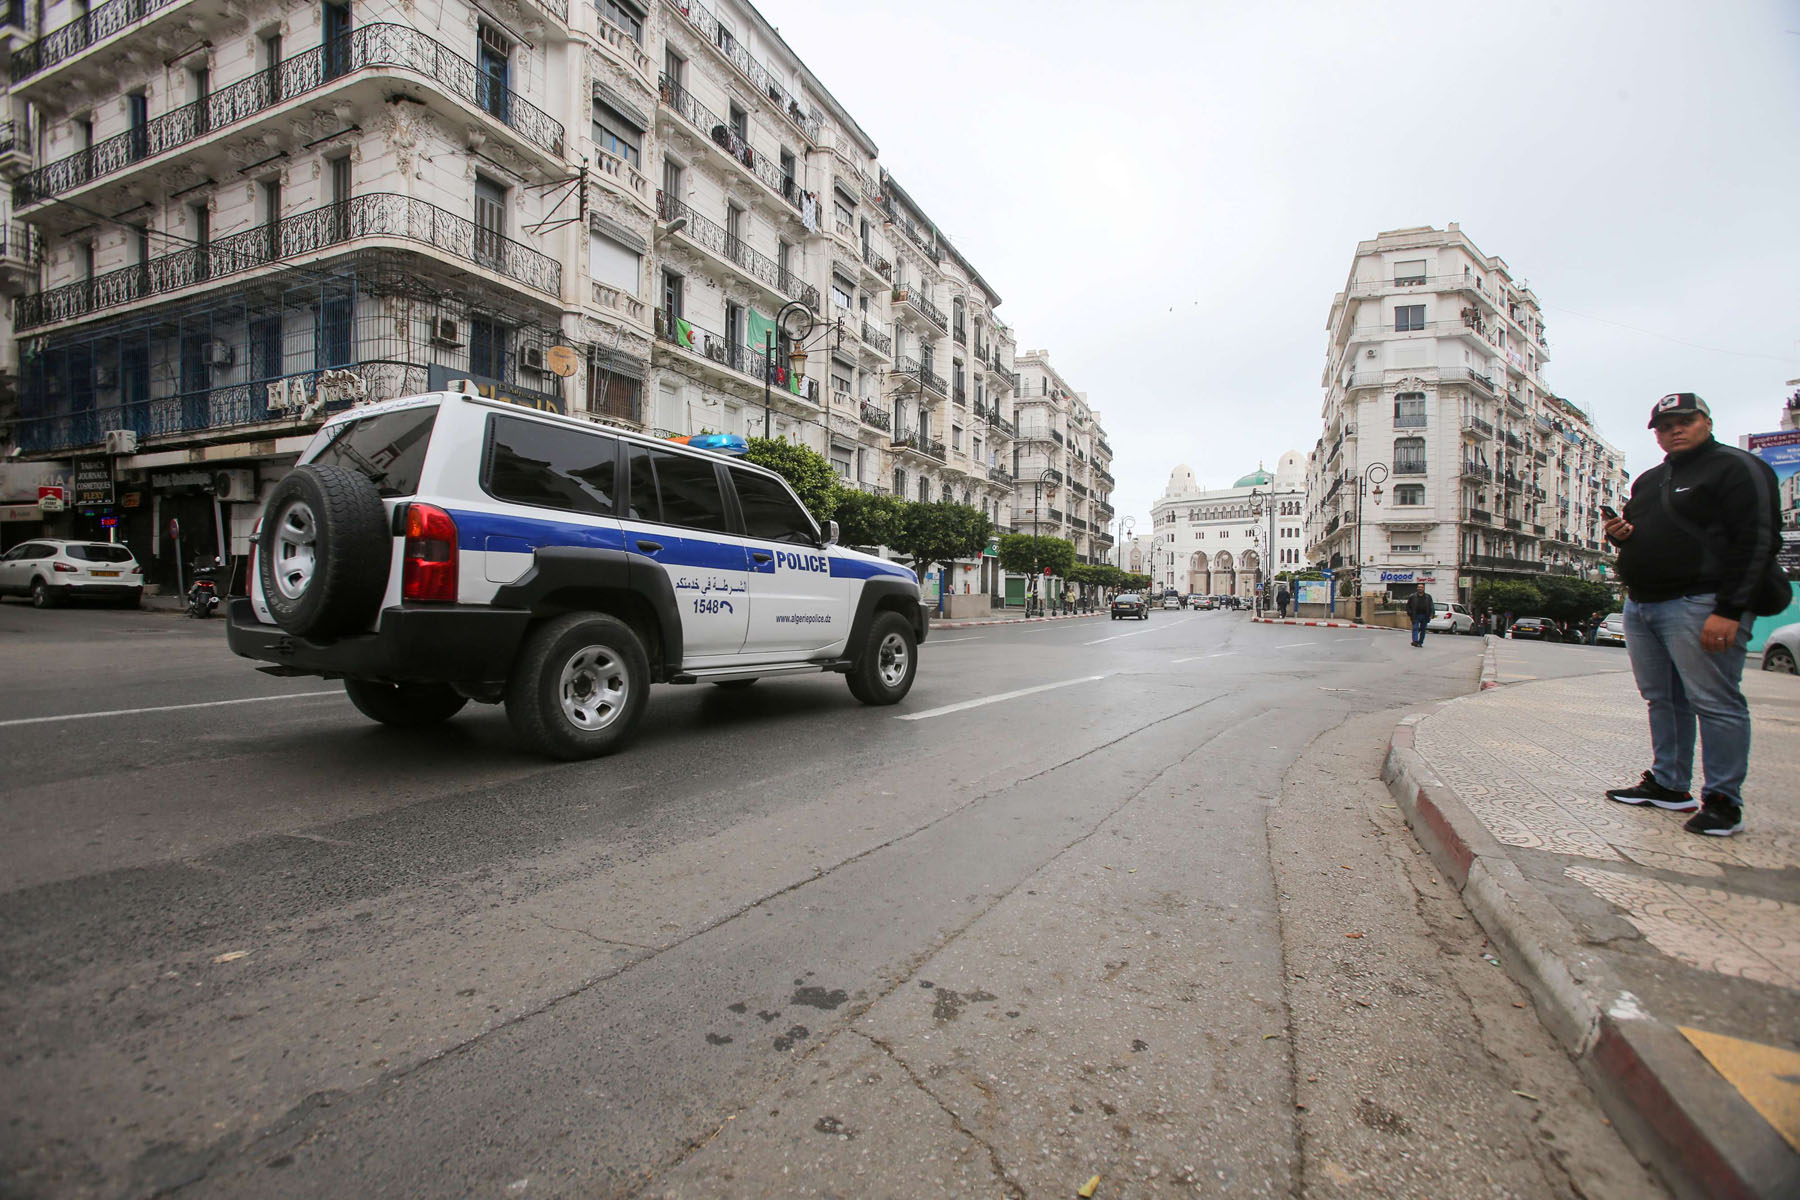 A general view shows empty streets in Algiers after anti-government protests were suspended, following the spread of the coronavirus pandemic. (REUTERS)